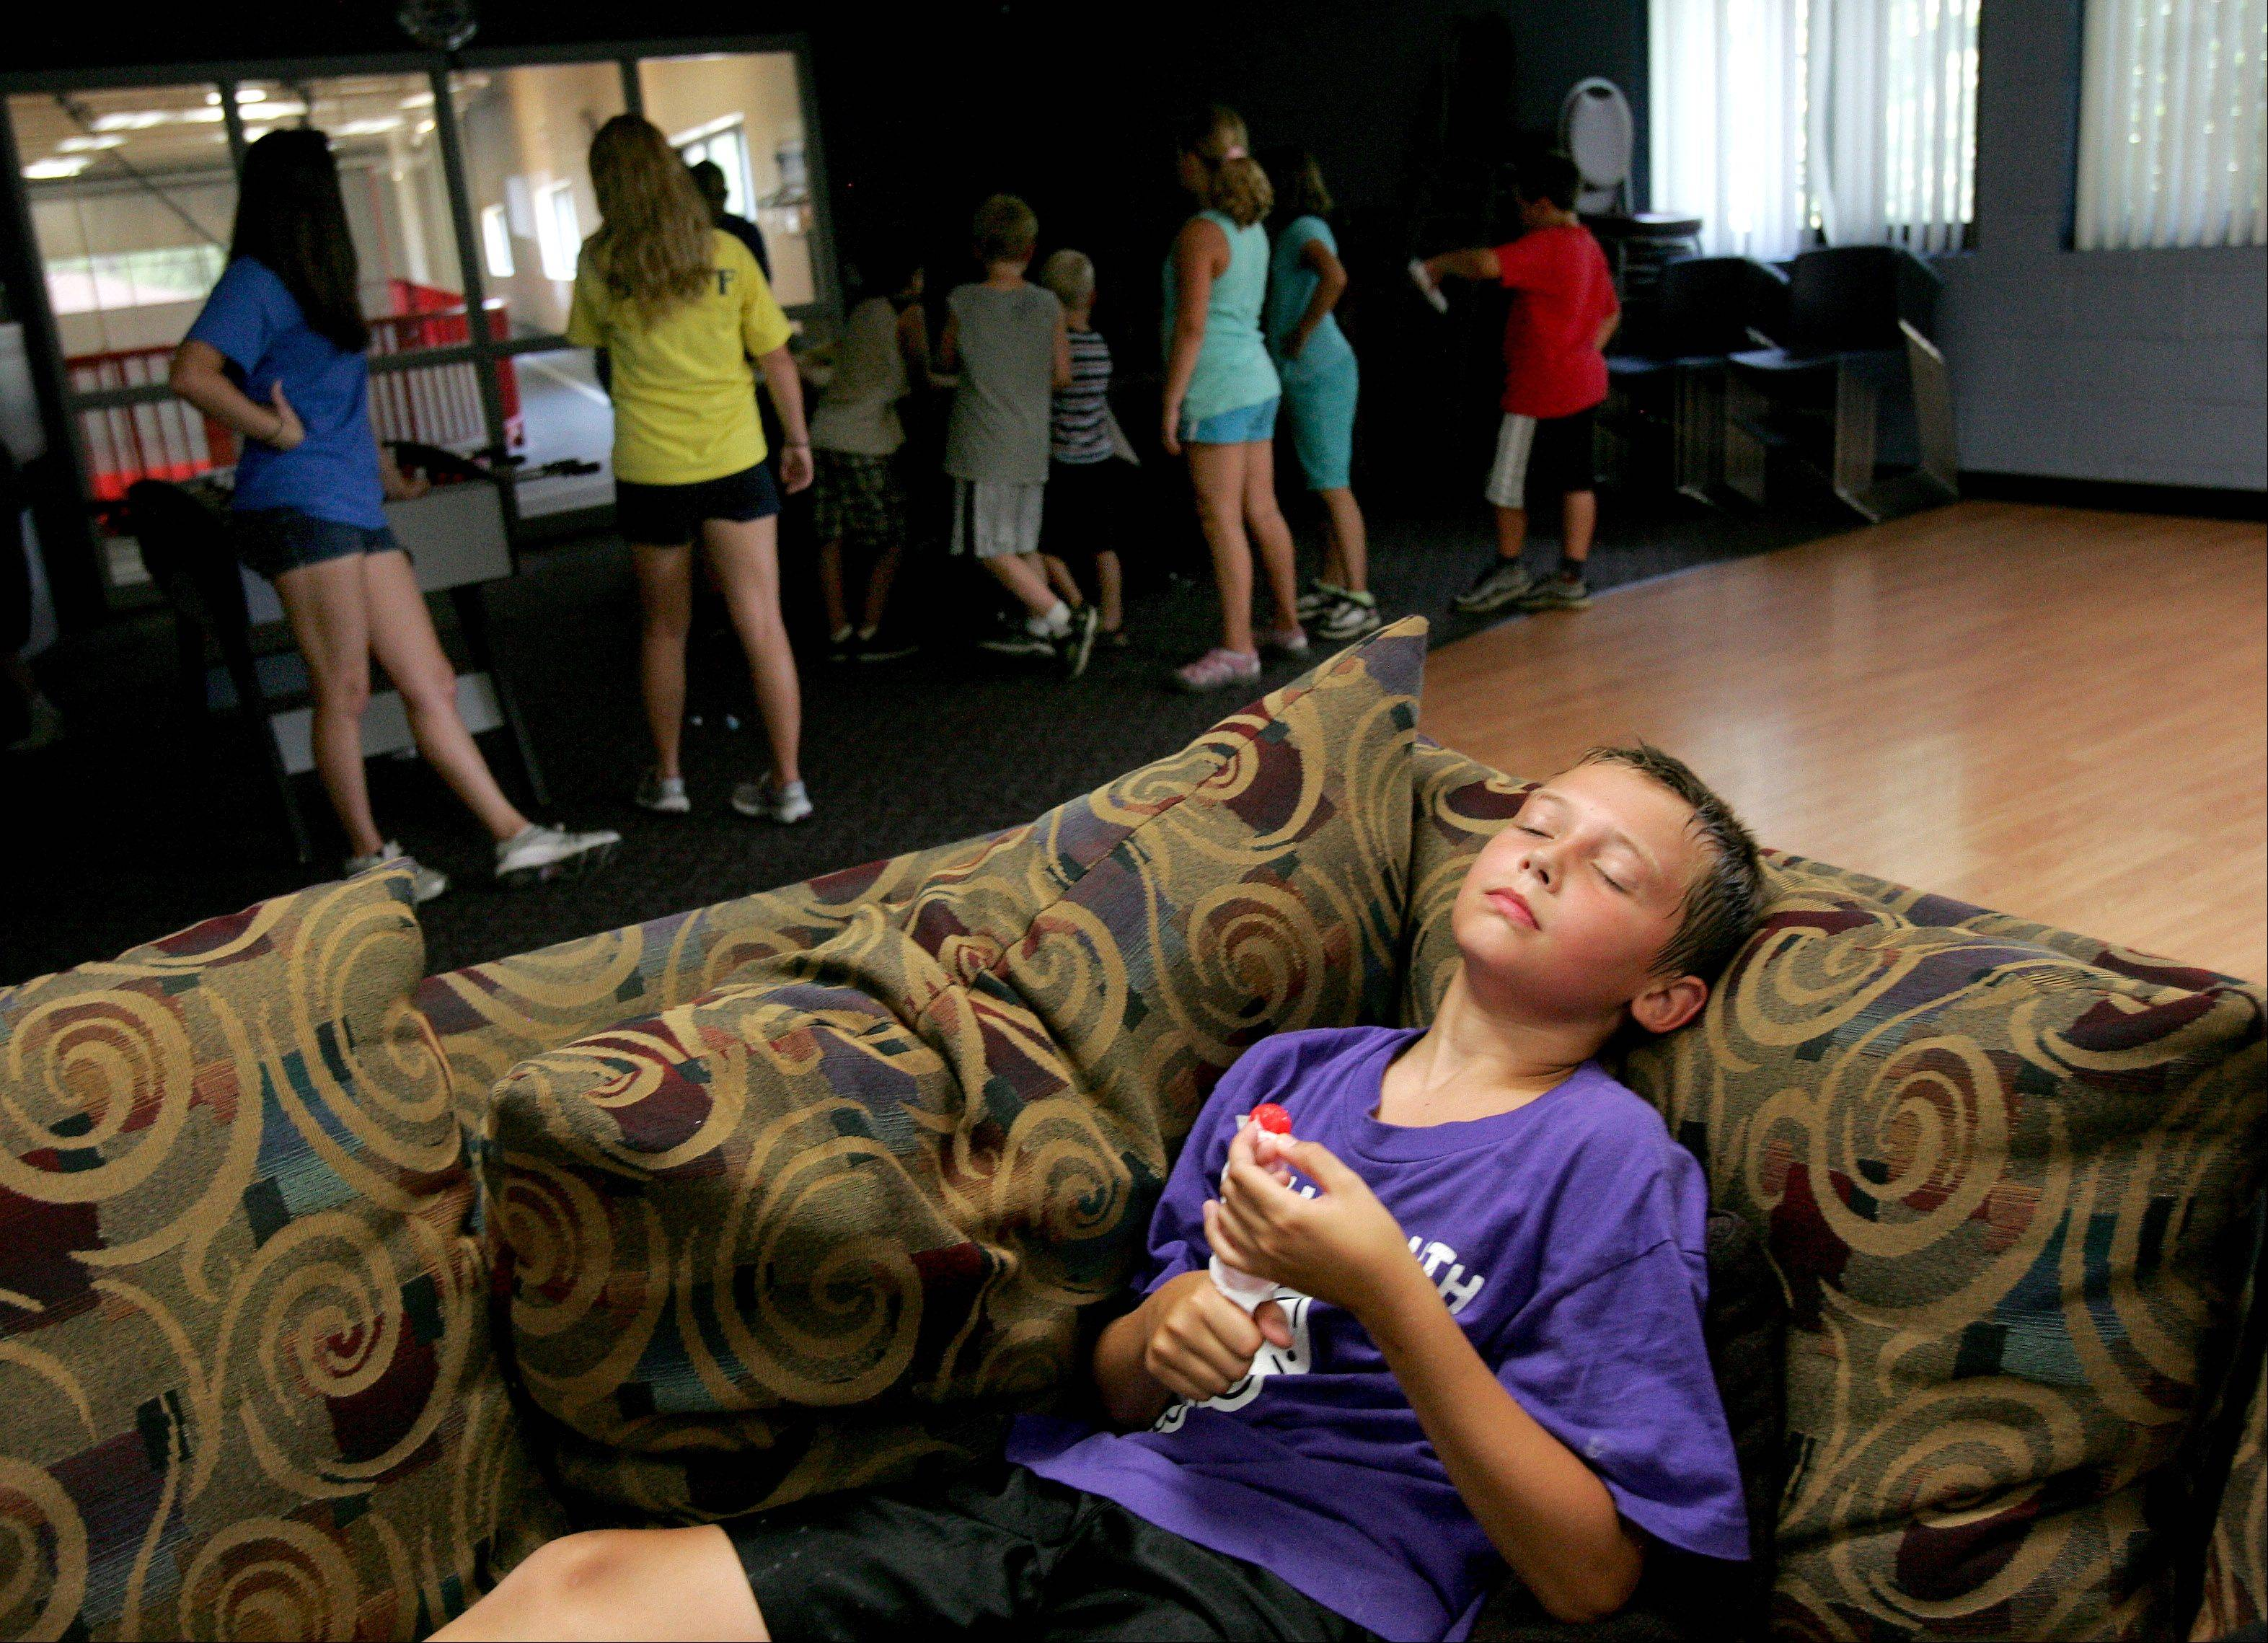 Heat wave forcing DuPage summer campers inside